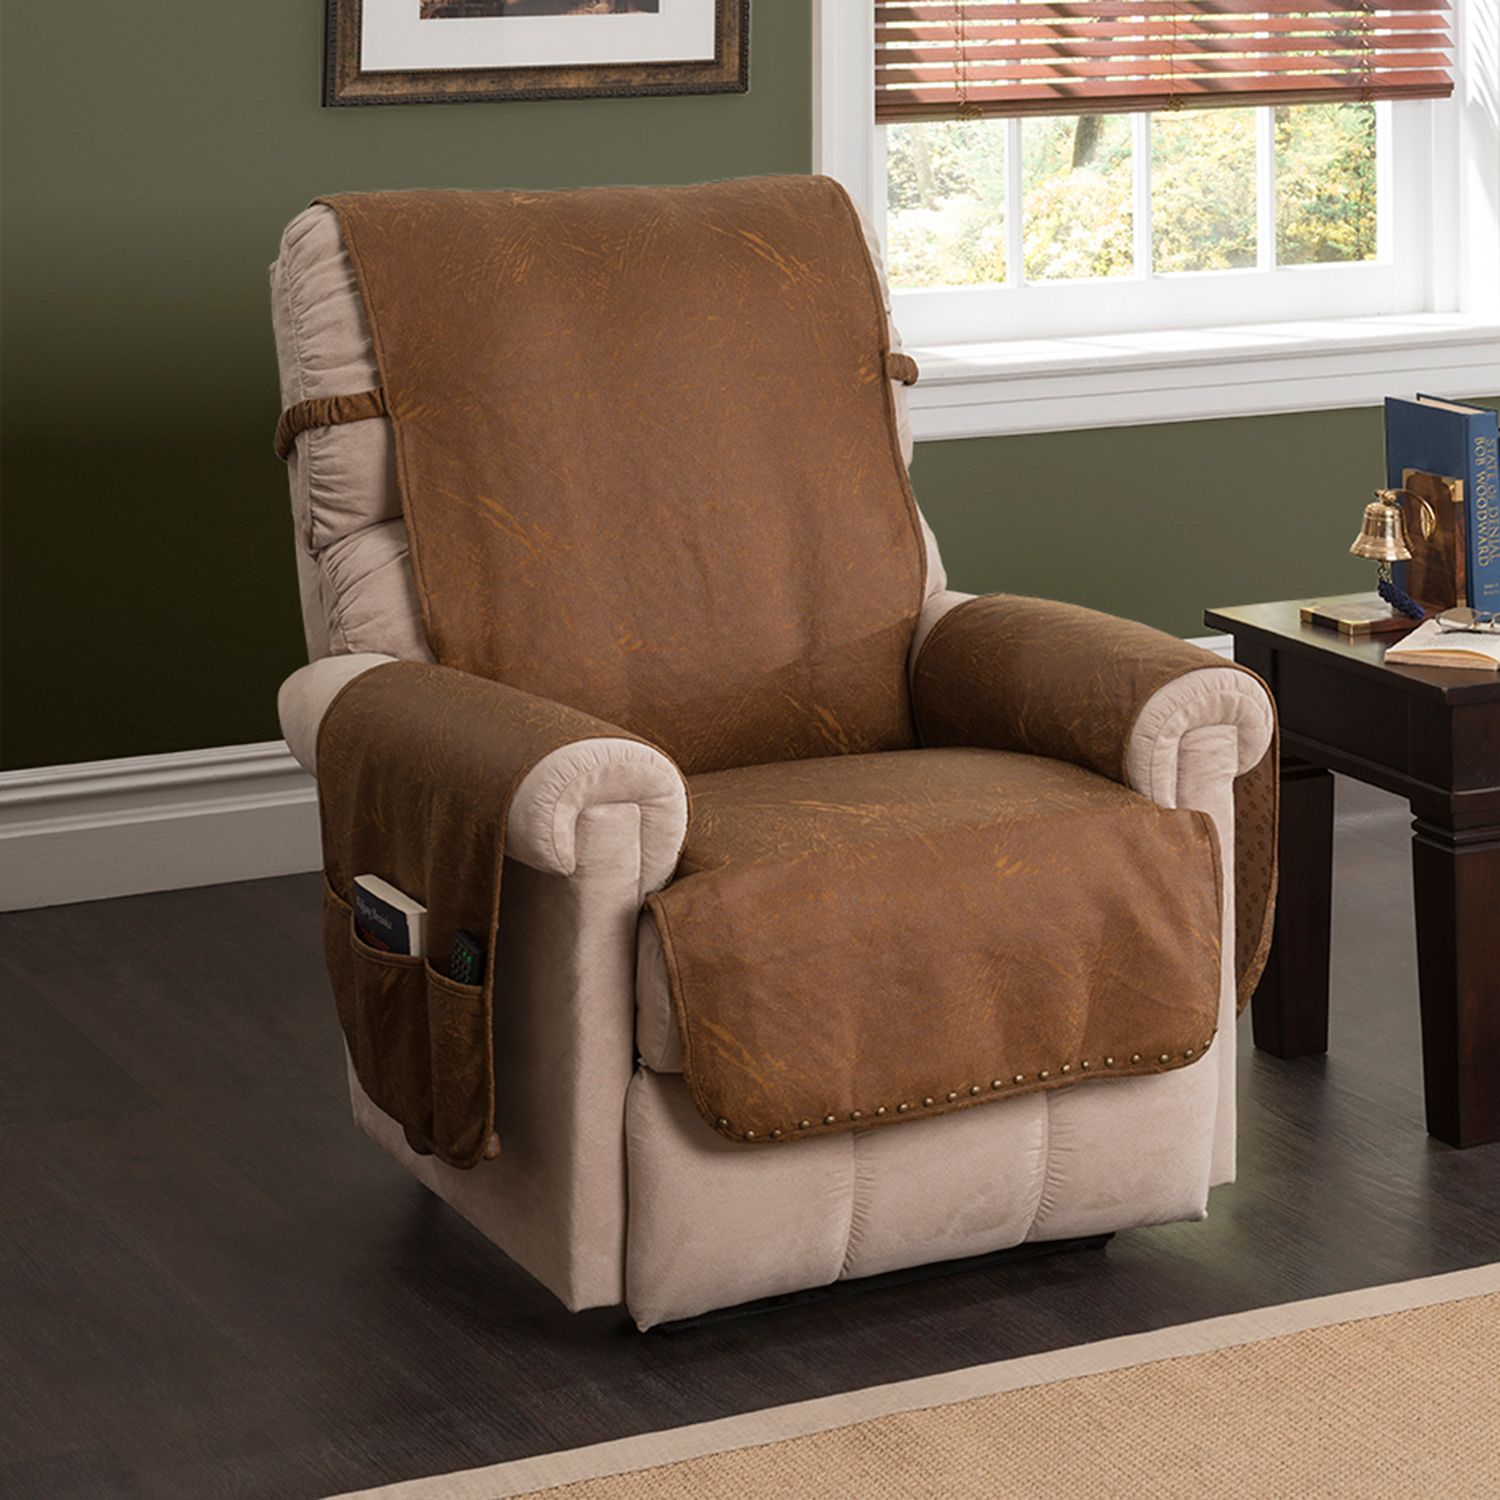 Innovative Textile Solutions Faux Leather Memory Foam Recliner Protector & Slipcovers u0026 Furniture Protectors Home Decor | Kohlu0027s islam-shia.org